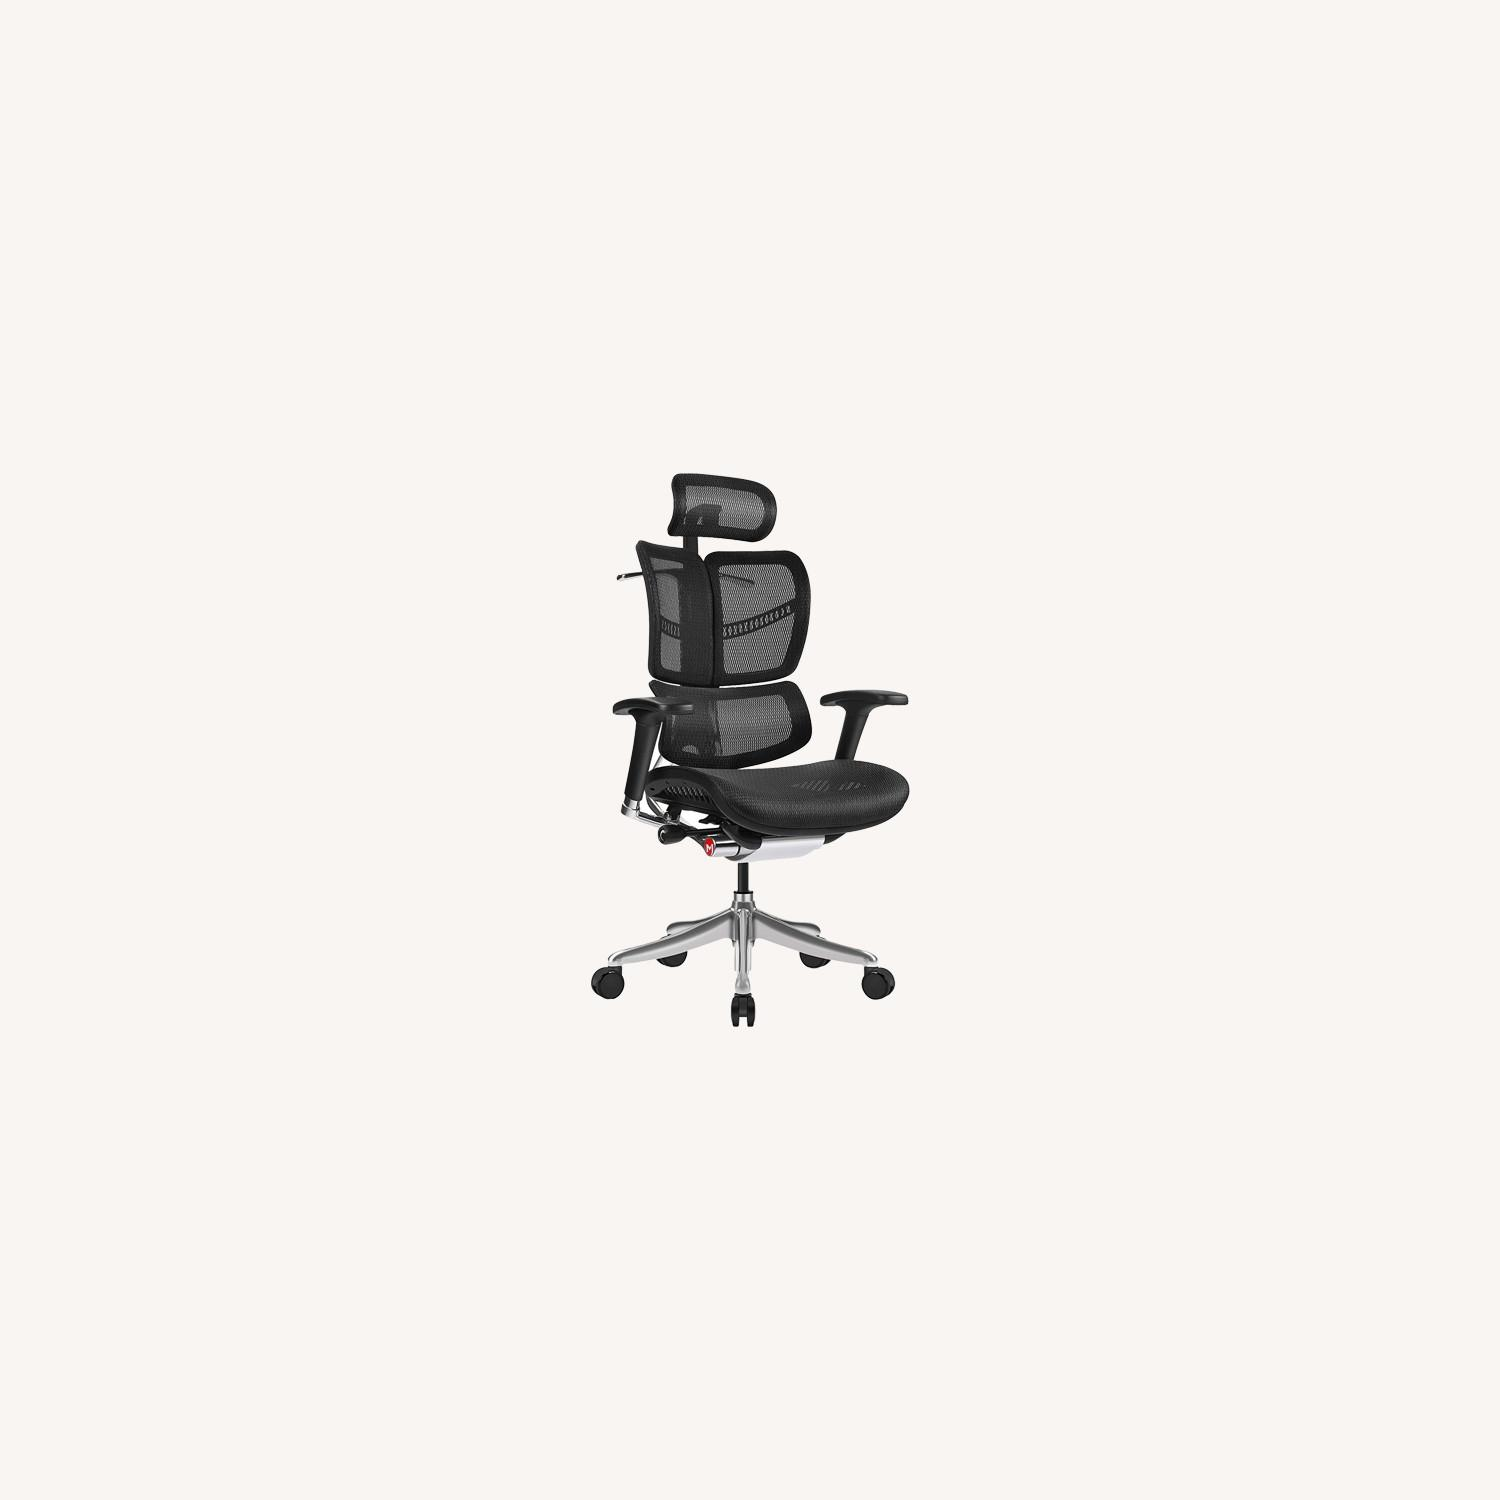 Ergonomic Office Chair with Headrest - image-0